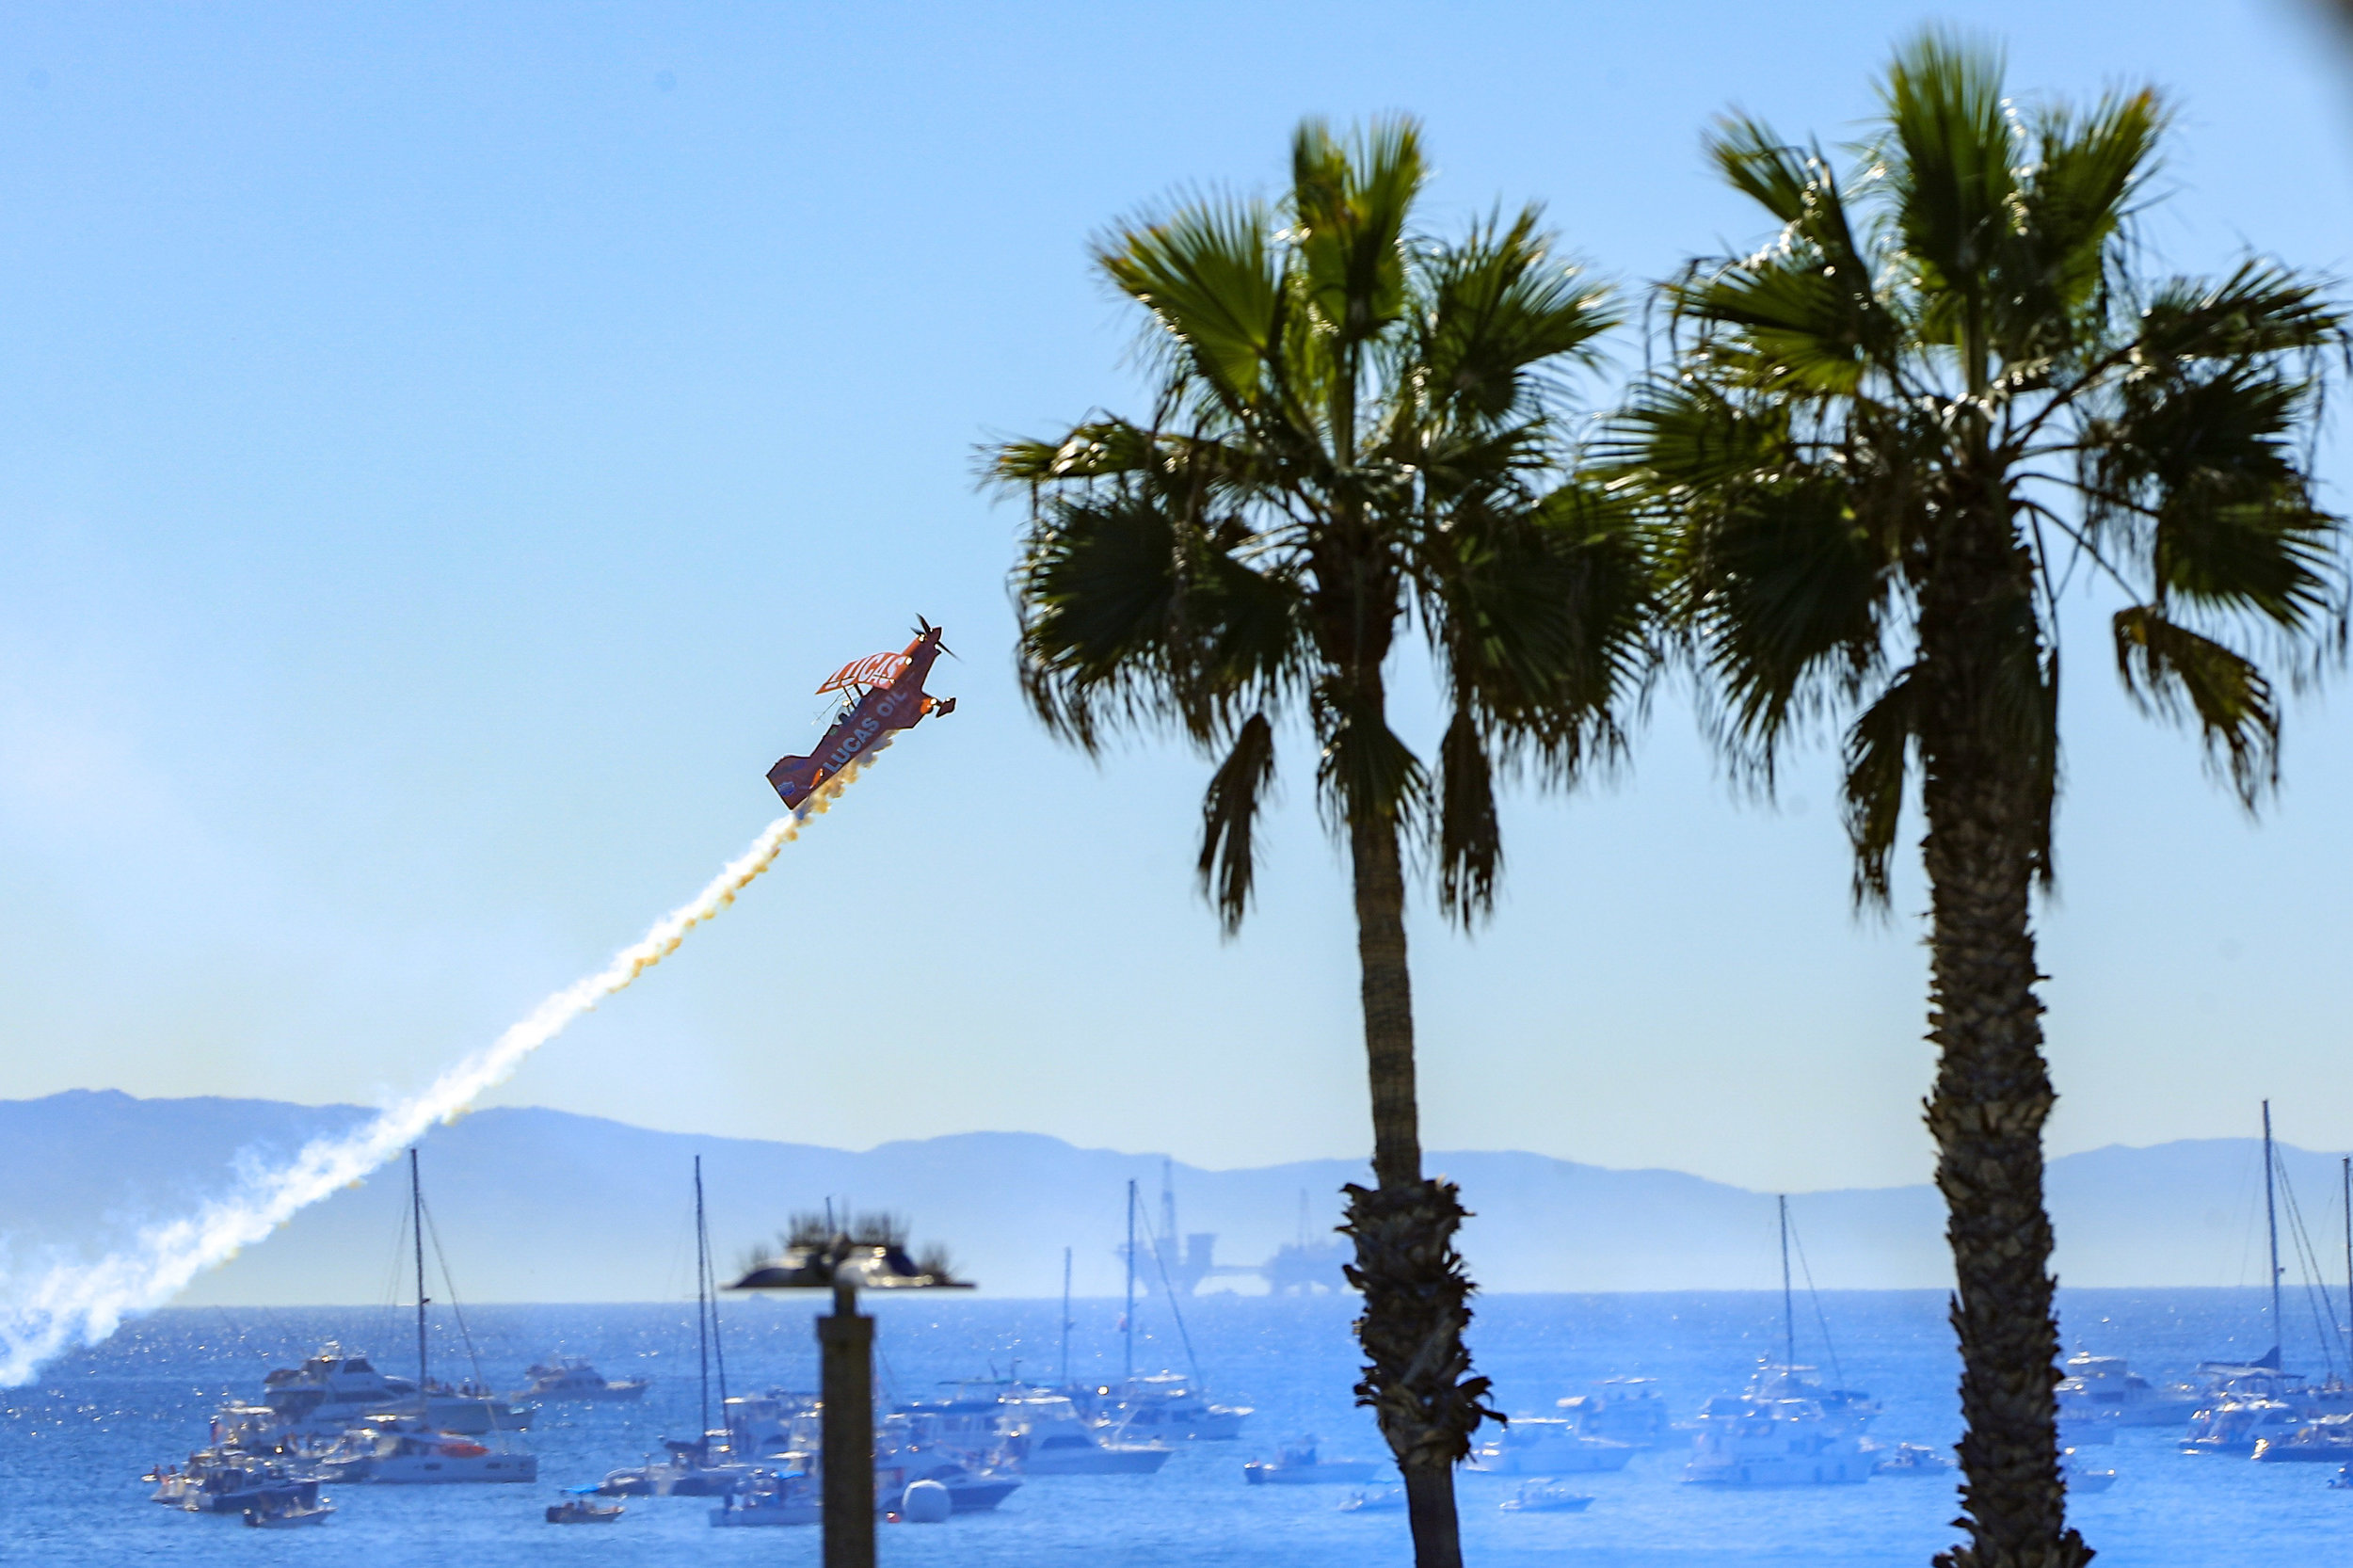 The Great Pacific Airshow - blends the excitement of extreme sports, high-tech aerial acrobatics, beachside surf nostalgia, and patriotism to give viewers an unforgettable experience in the sand and on the water.